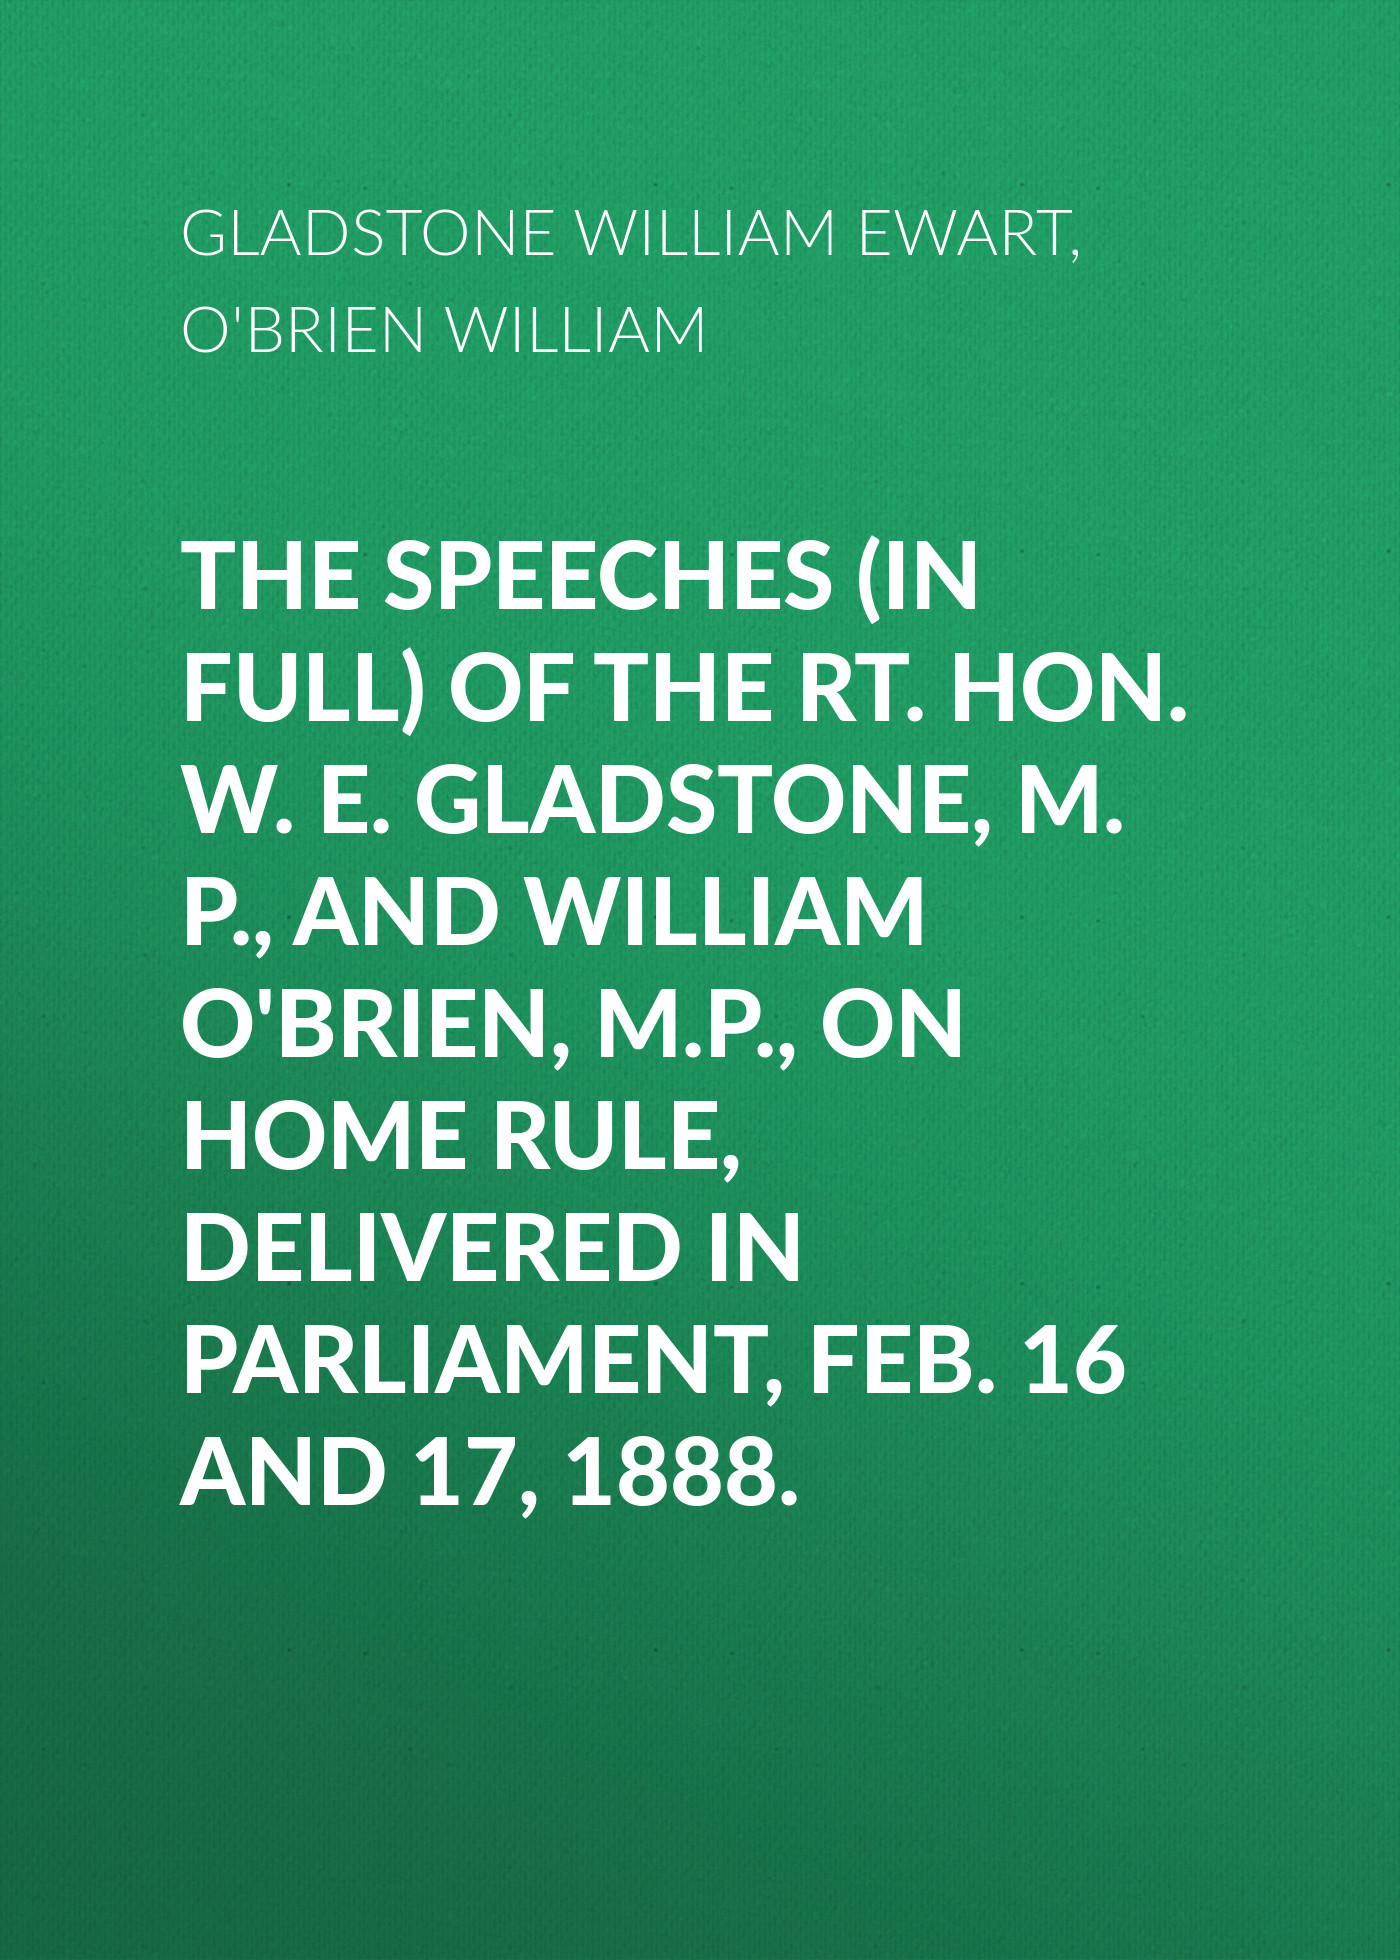 Gladstone William Ewart The Speeches (In Full) of the Rt. Hon. W. E. Gladstone, M.P., and William O'Brien, M.P., on Home Rule, Delivered in Parliament, Feb. 16 and 17, 1888.